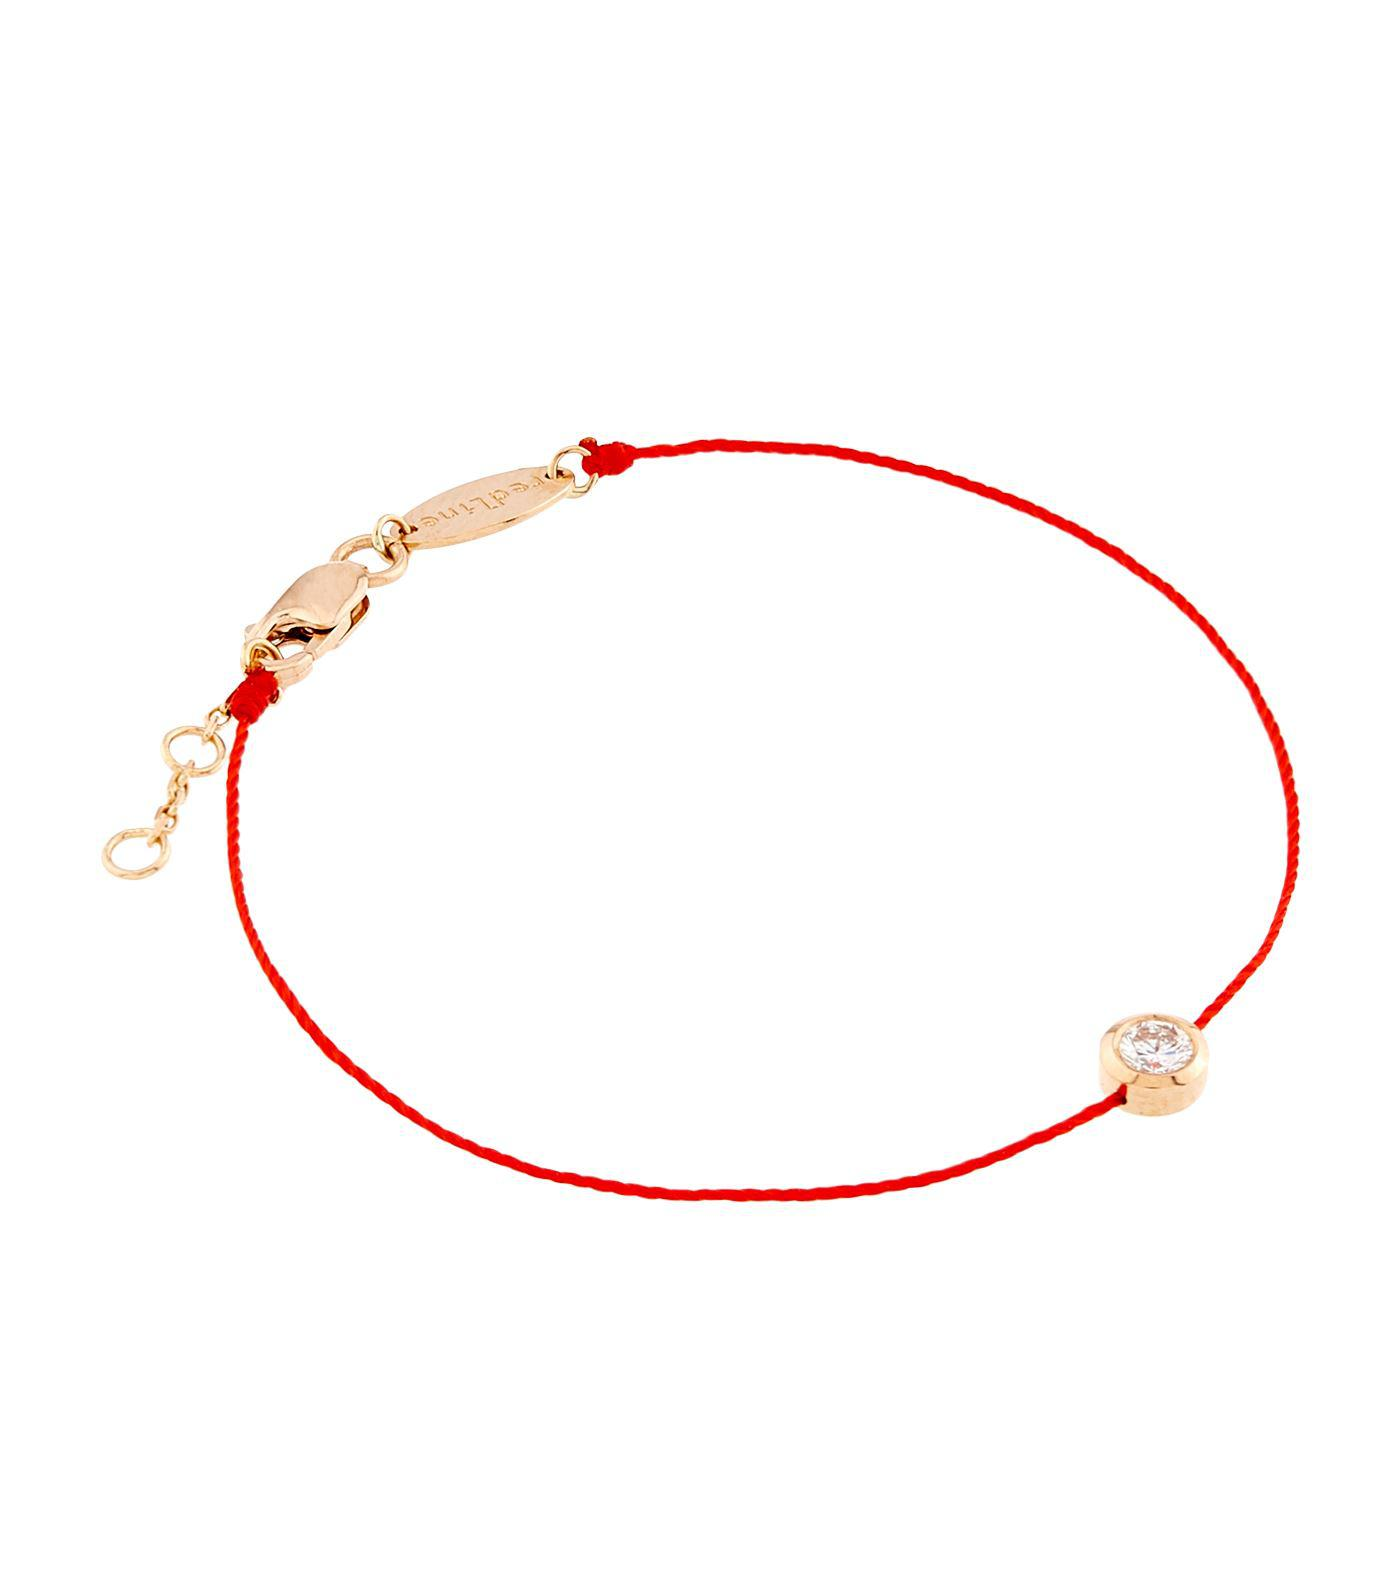 bracelet redline leave cancel alkemistry line jewellery bracelets red a honoree luxury copy reply